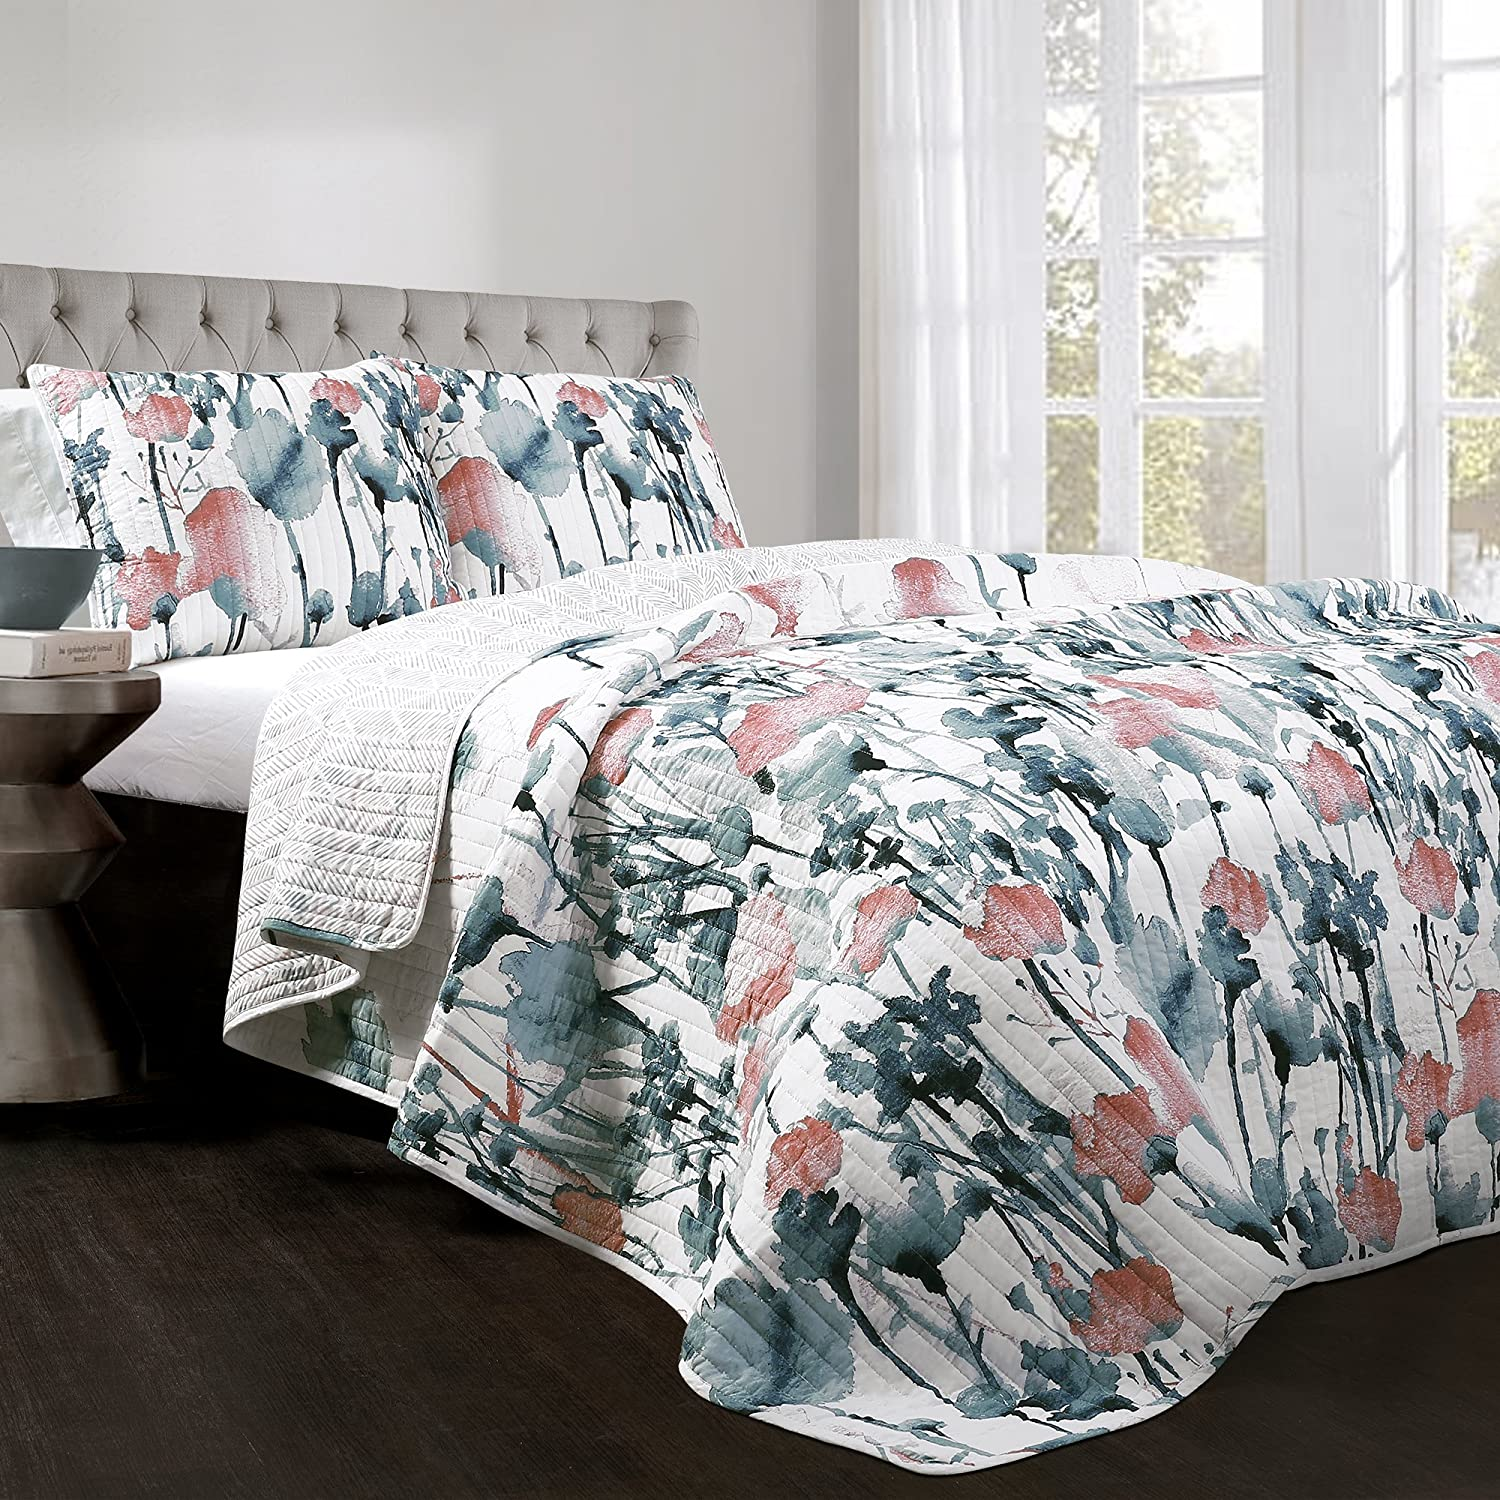 Lush Decor Zuri Flora Quilt-Colorful Painted Flower Design Reversible 3 Piece Bedding Set-King-Blue and Coral, Blue & Coral